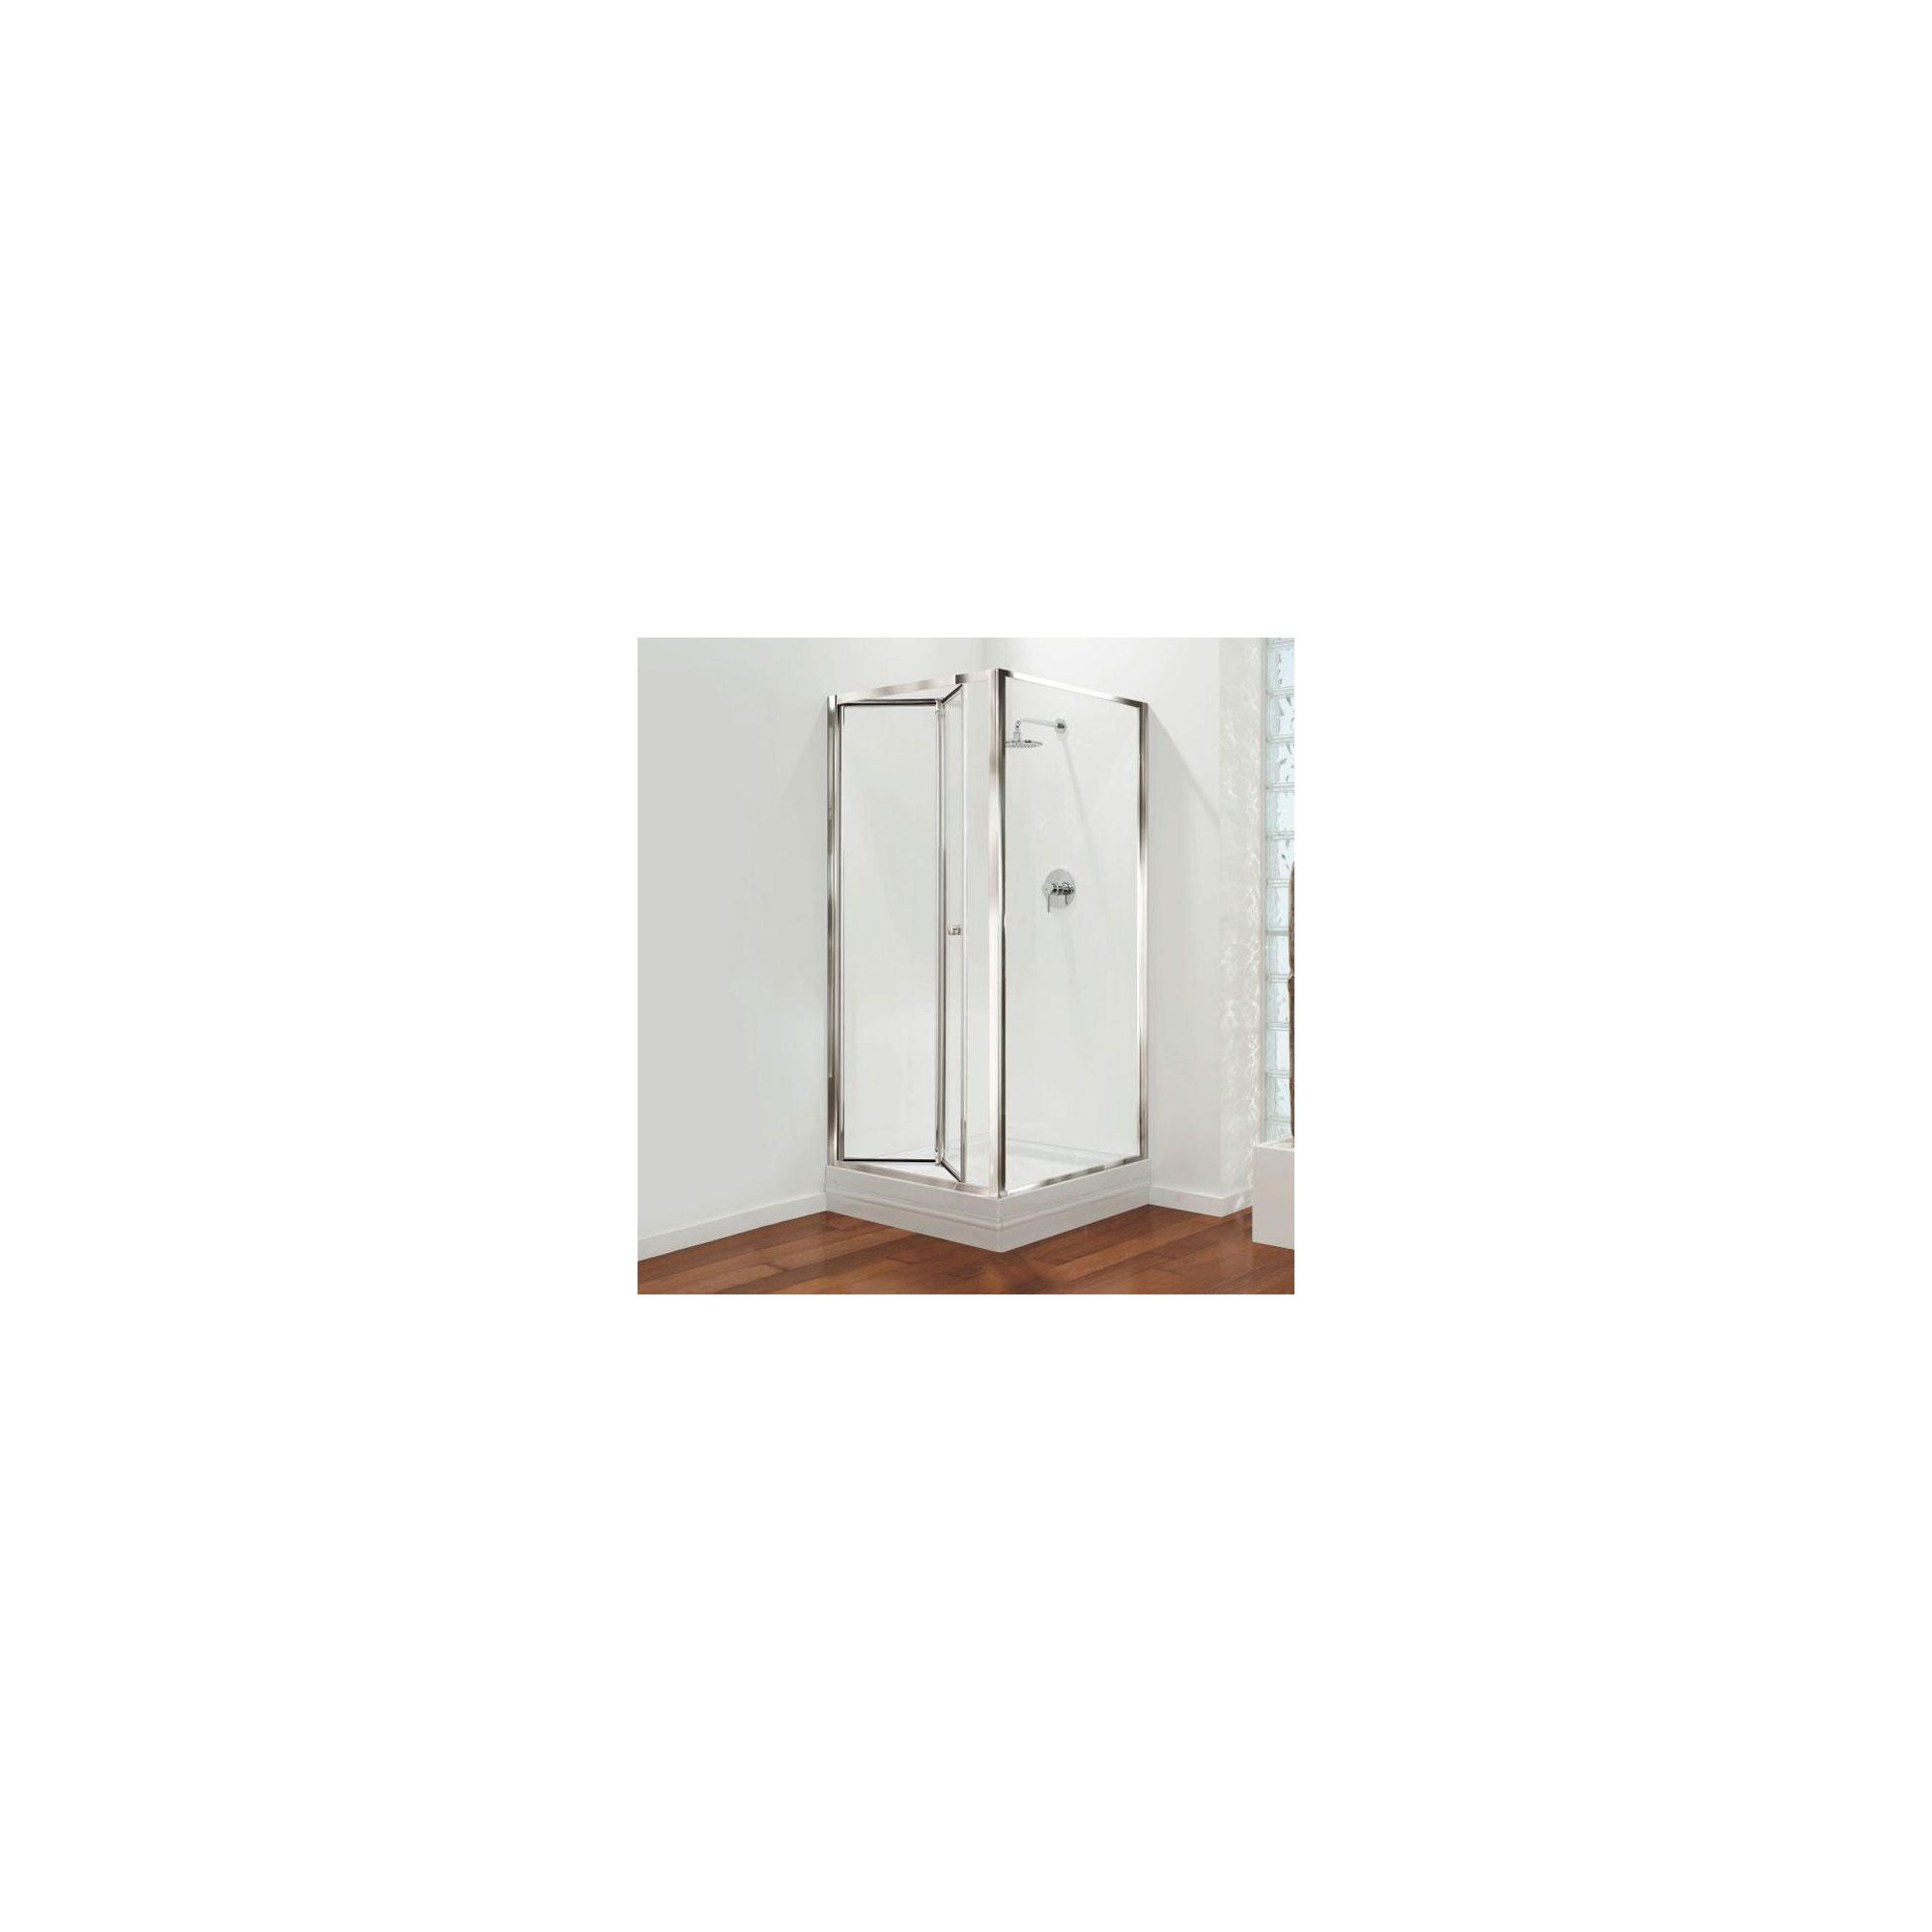 Coram GB Bi-Fold Door Shower Enclosure, 900mm x 760mm, Standard Tray, 4mm Glass, Chrome Frame at Tesco Direct